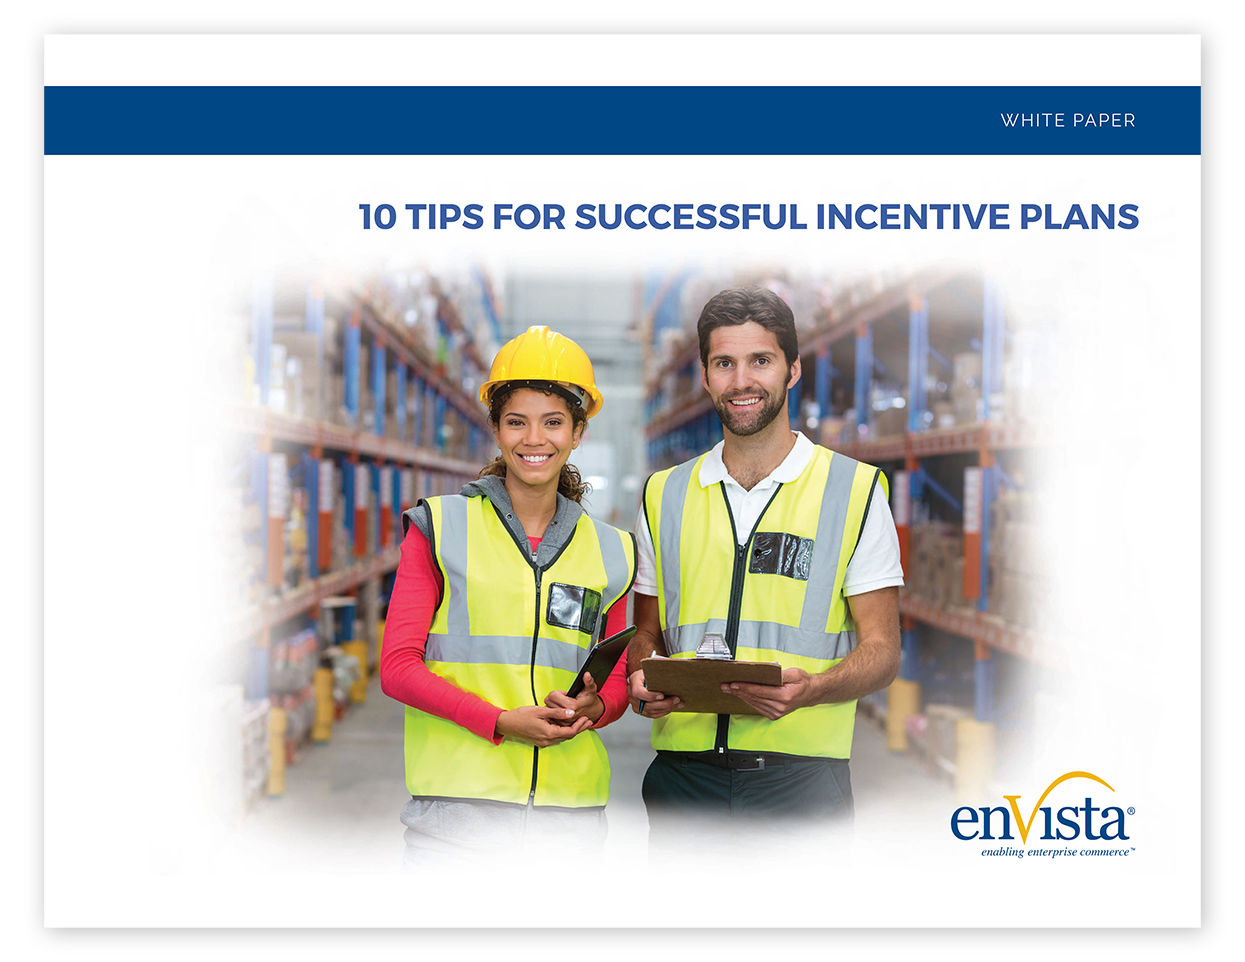 WhitePaper-10-Tips-For-Successful-Incentive-Plans-1